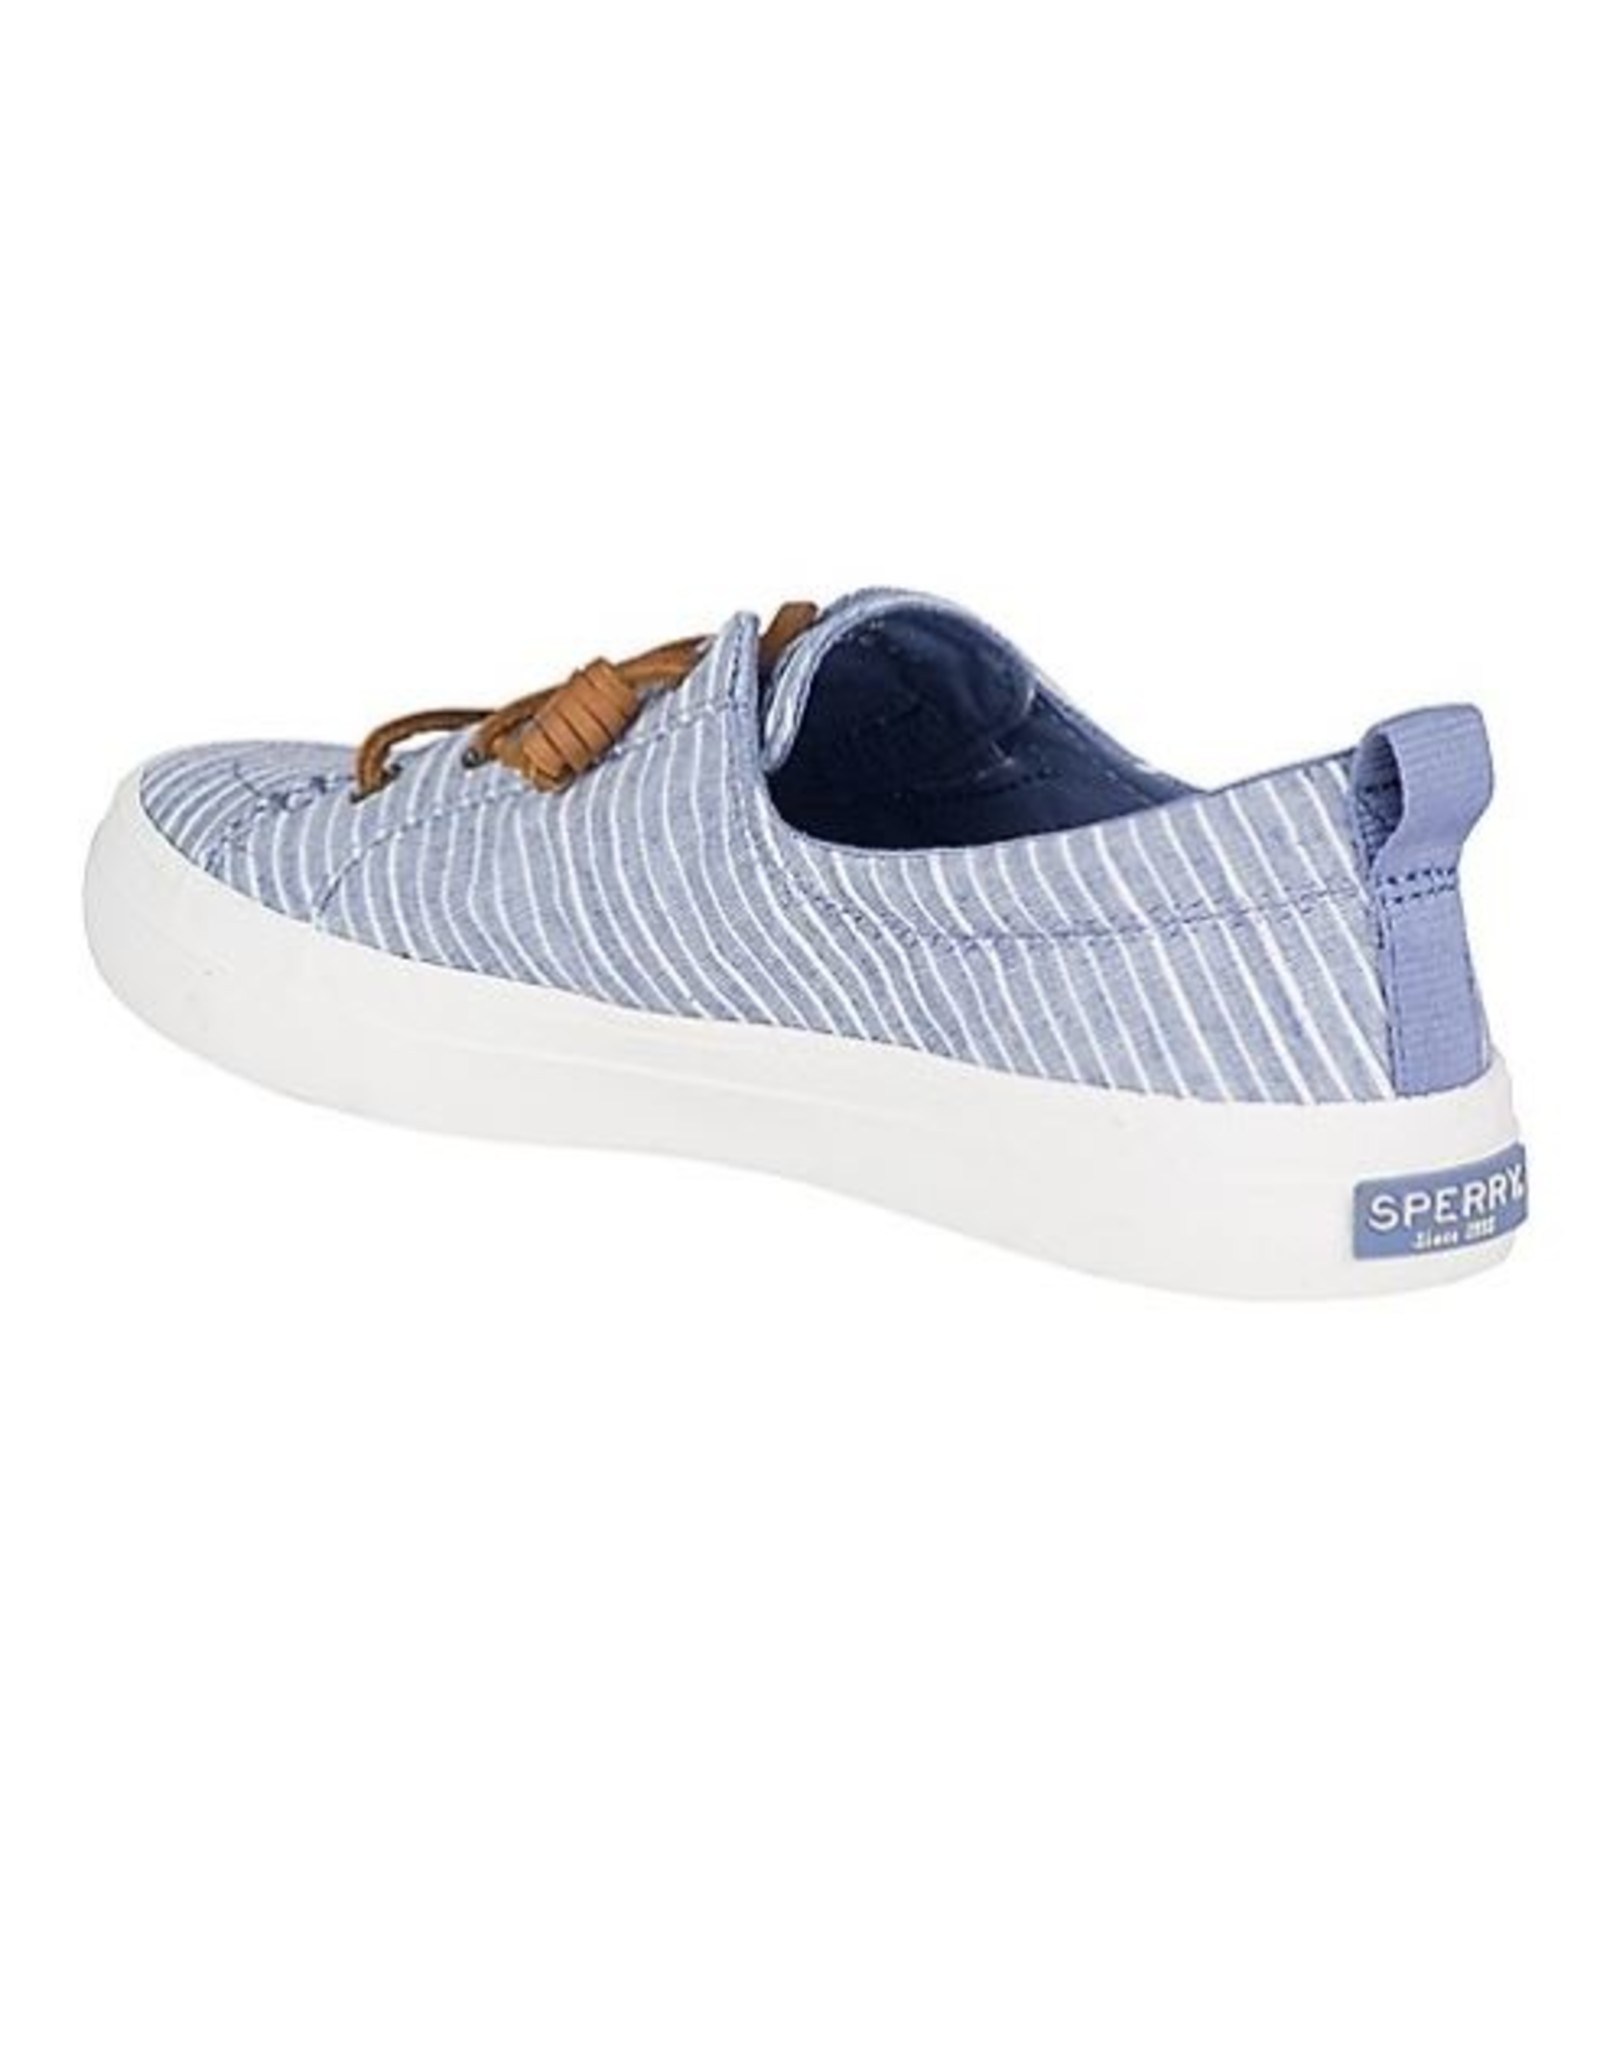 Sperry Top Siders Women's Crest Vibe - SP19